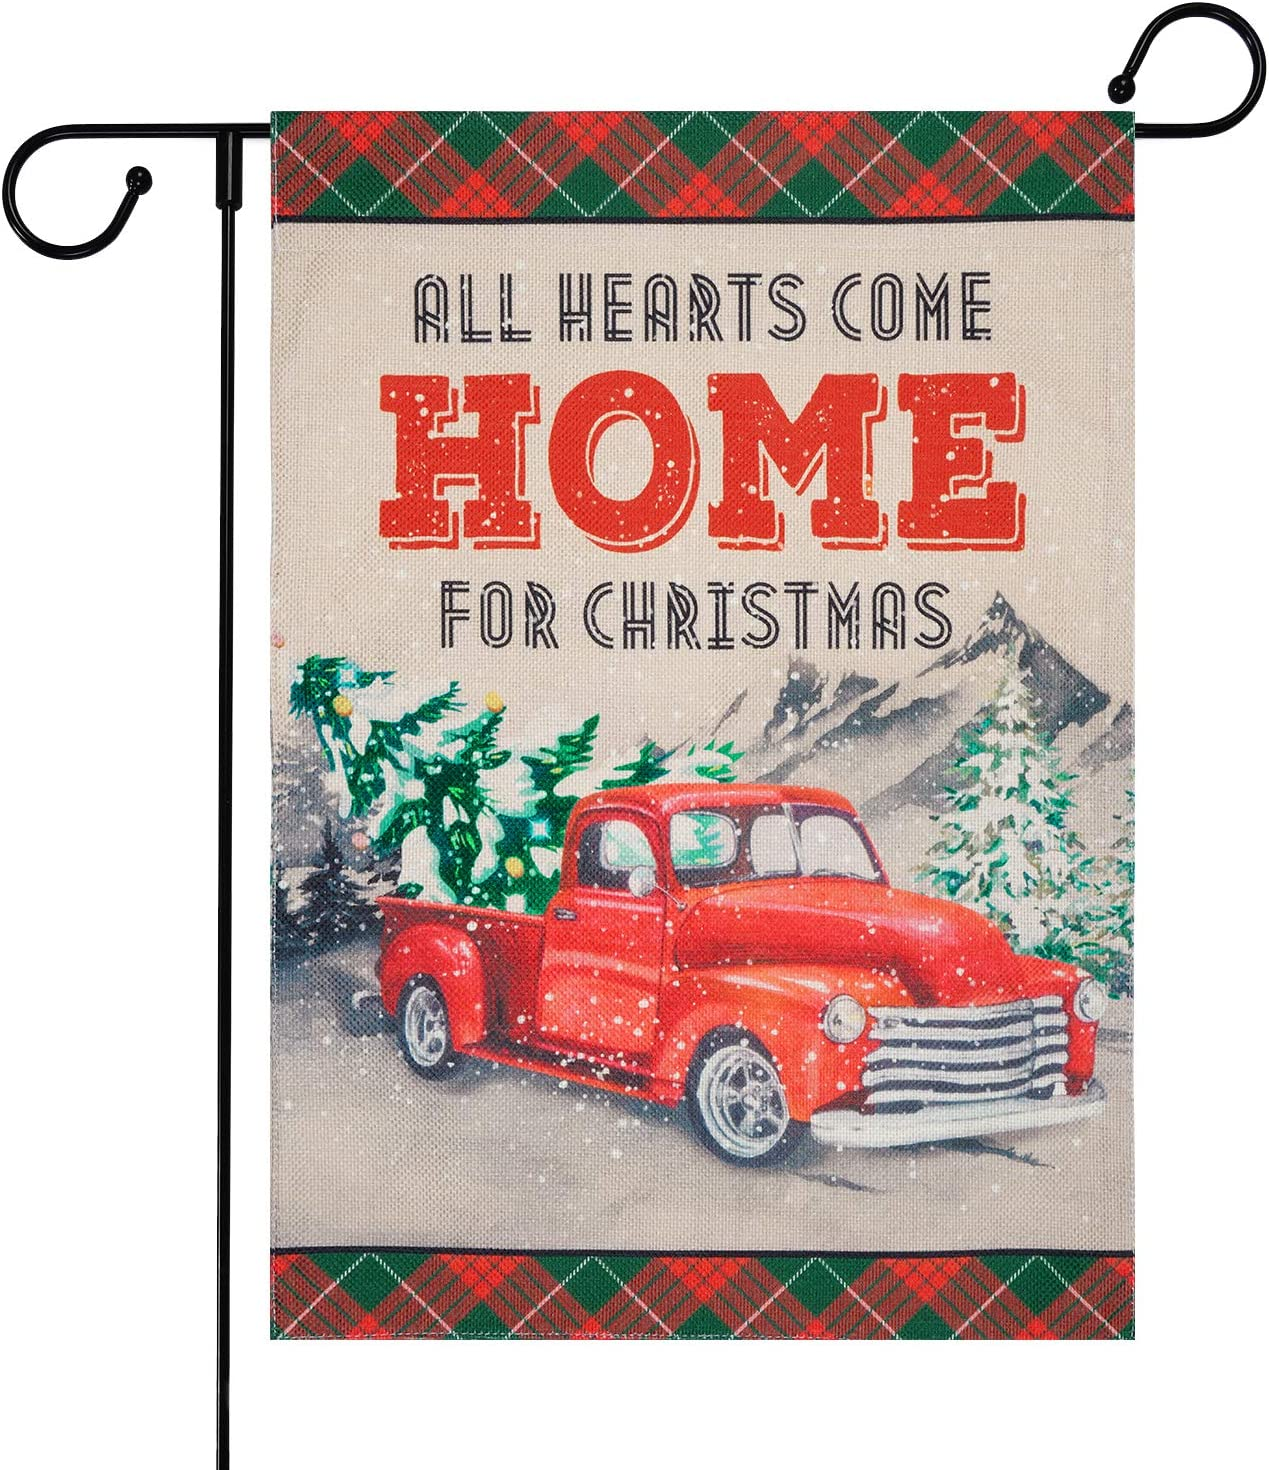 Ikfashoni Christmas Garden Flags for Outside, Double Sided Red Truck Yard Flags, Winter Burlap Garden Yard Decorations, Seasonal Rustic Outdoor Flag, 12.5 x 18